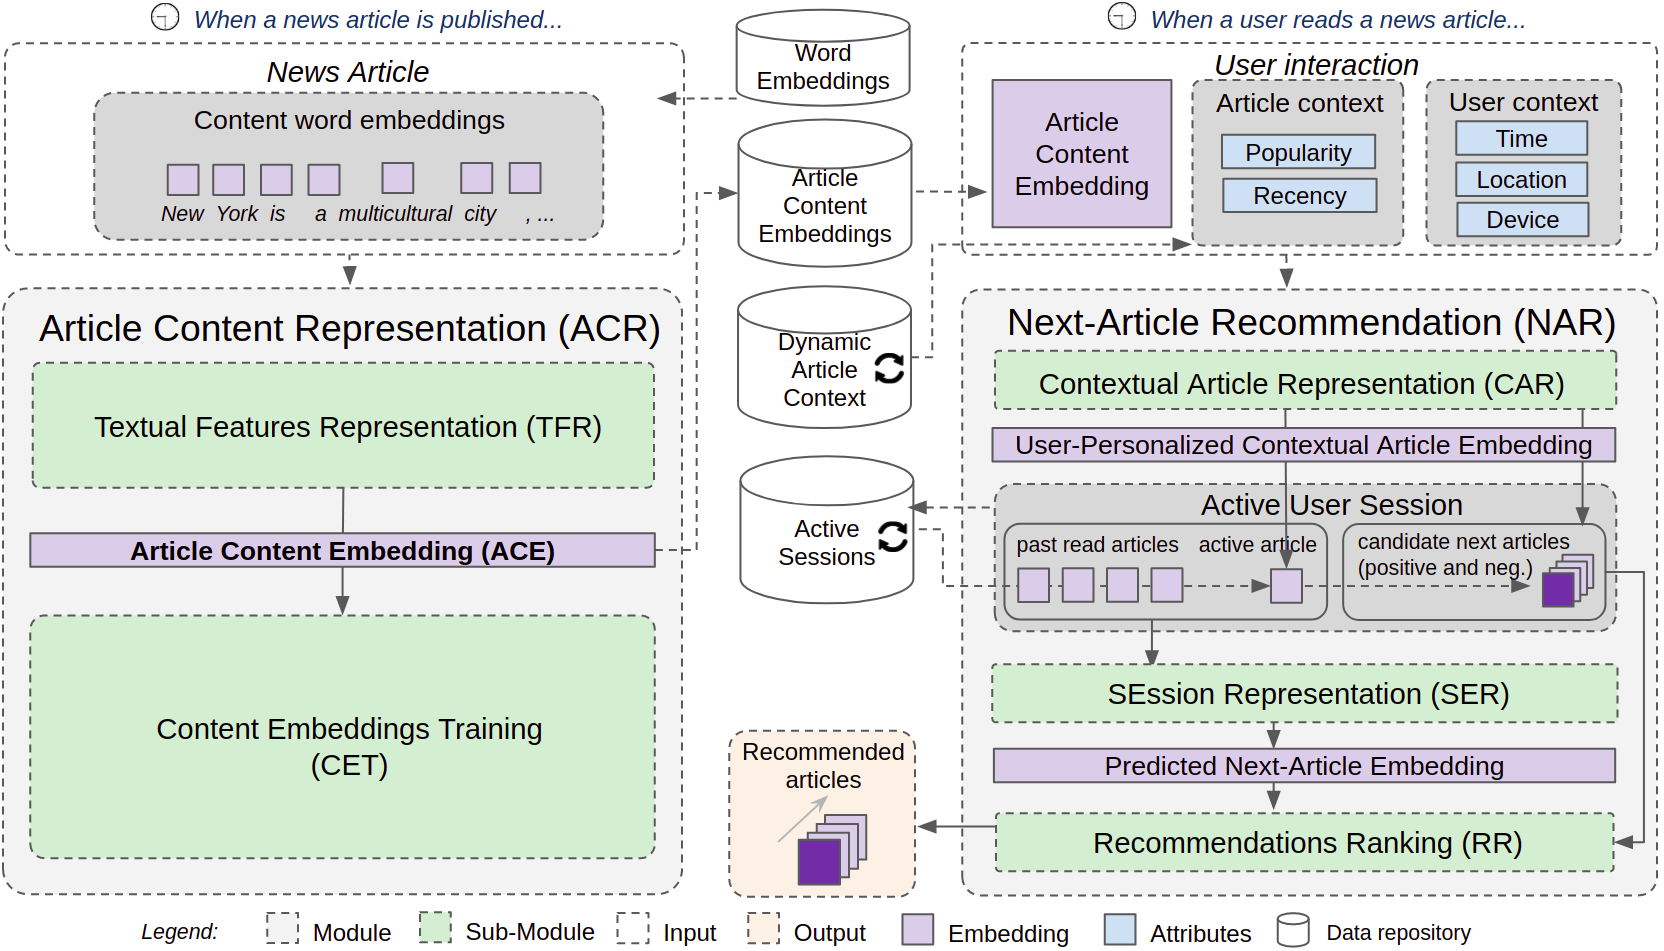 Fig. 1 - CHAMELEON - a Deep Learning Meta-Architecture for News Recommender Systems